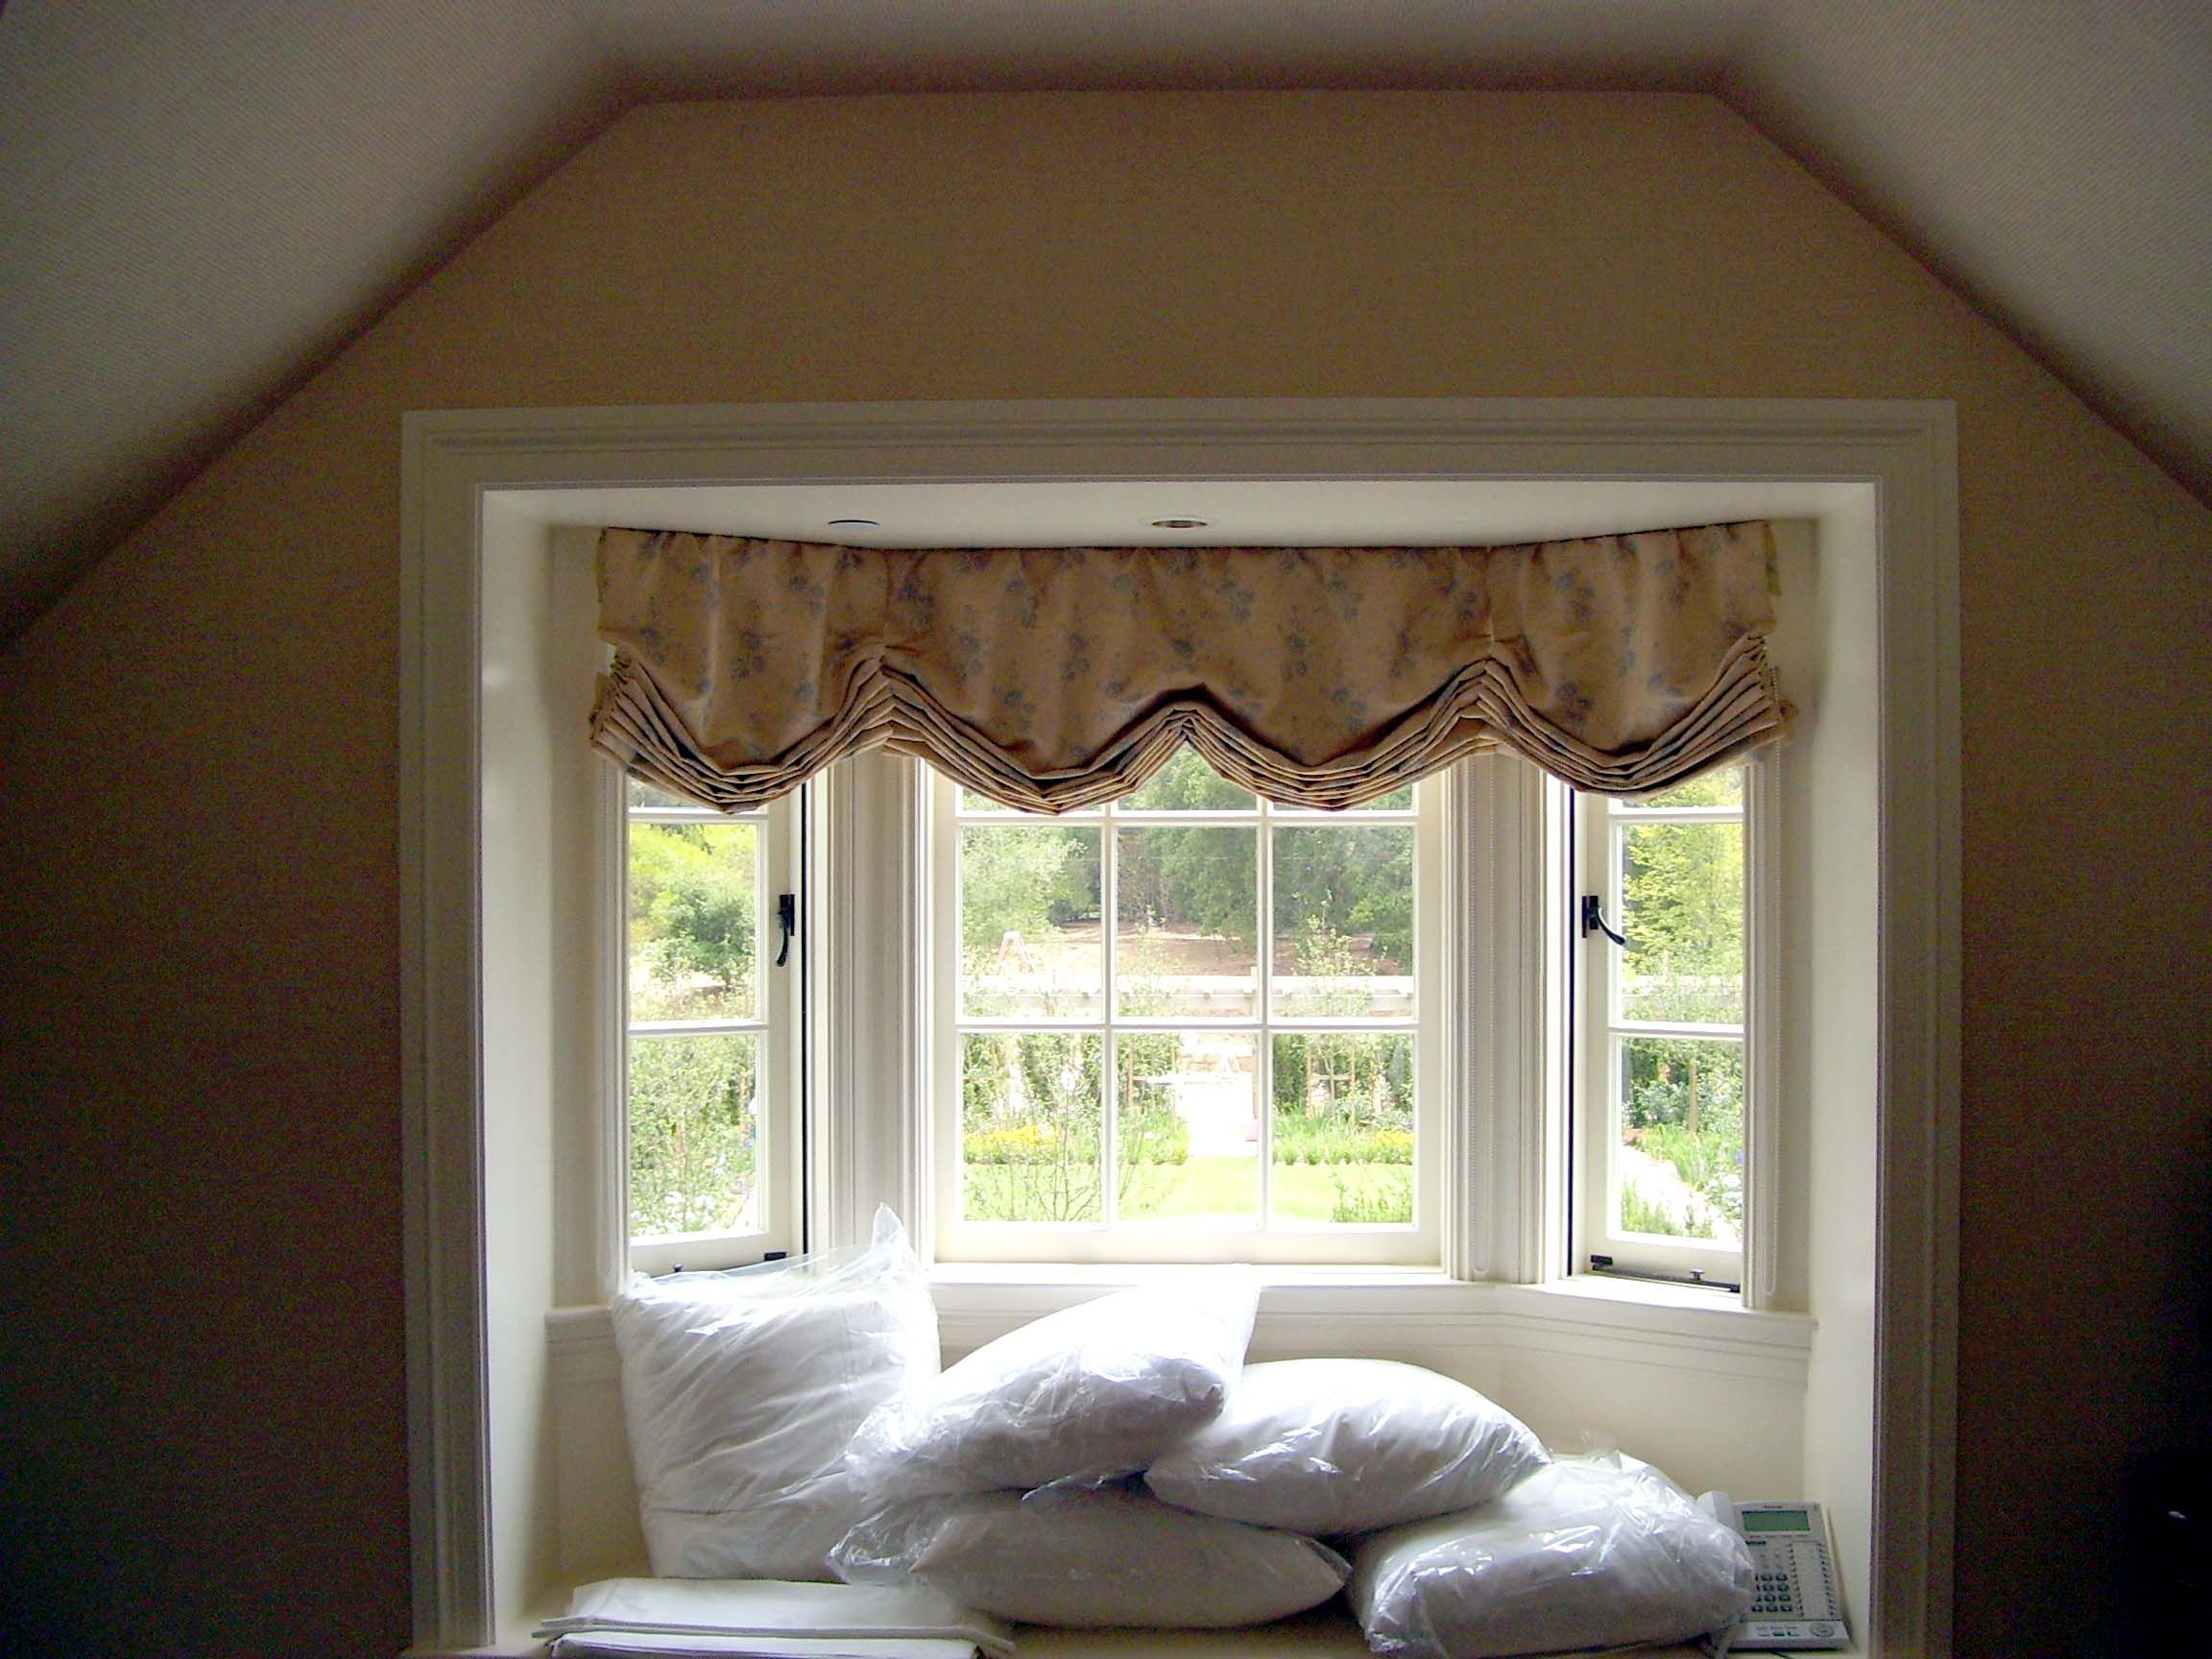 Faux Roman Shade Valance Kitchen Windows